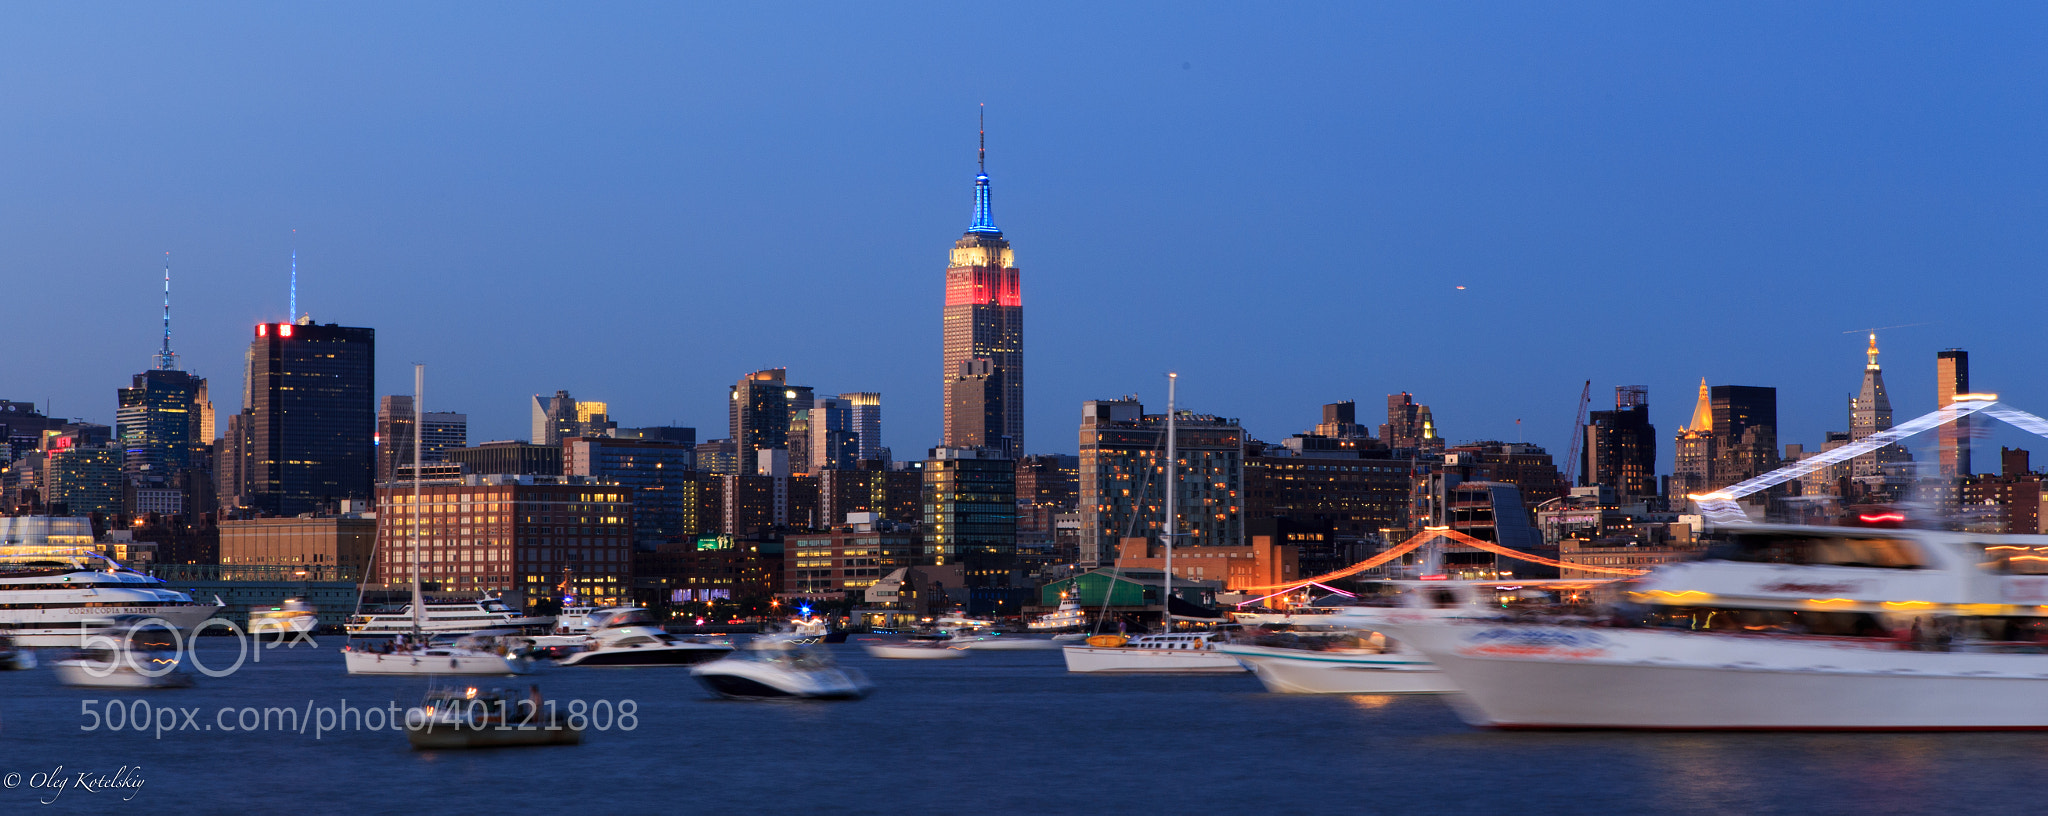 Photograph July 4th Manhattan by Oleg Kotelskiy on 500px